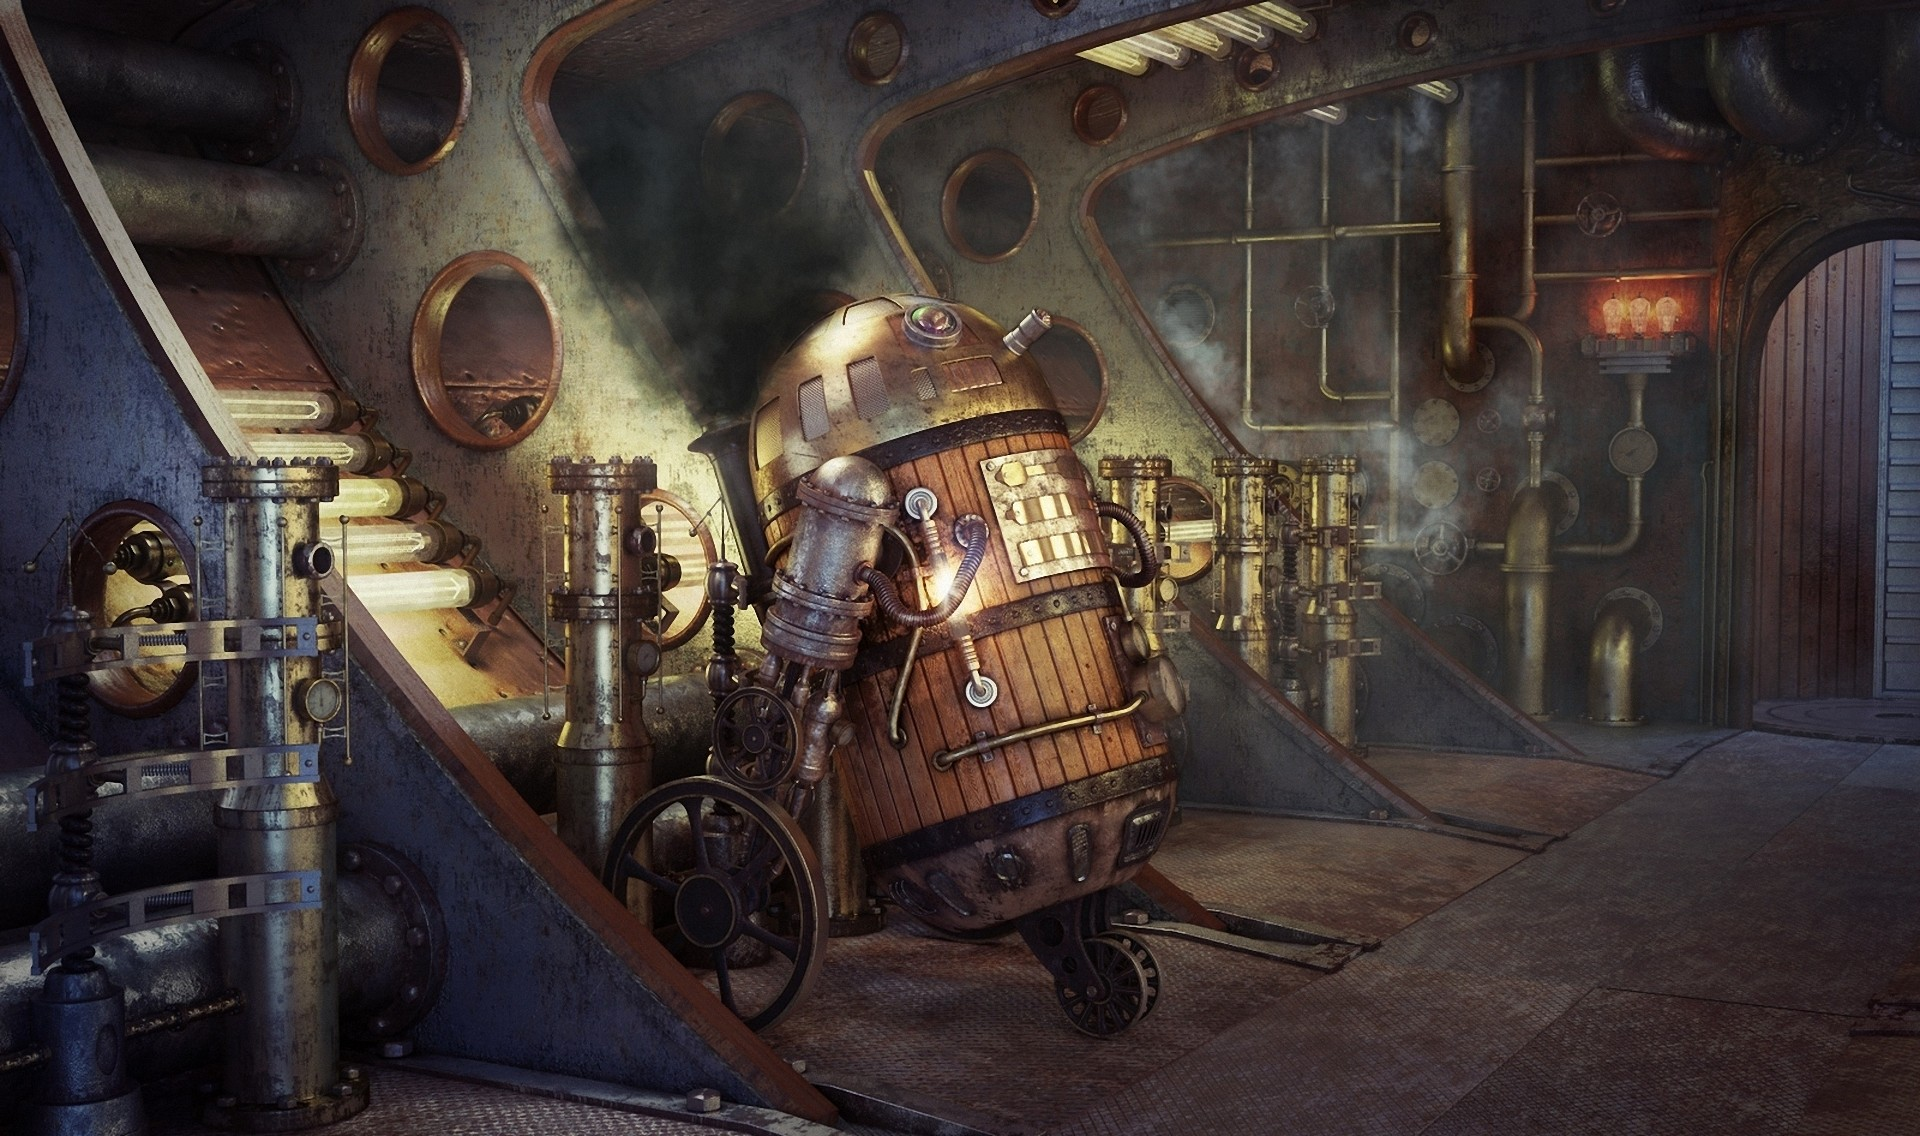 1920x1136 Art Star Wars steampunk robot R2D2 smoke pipes movies futuristic wallpaper  |  | 55046 | WallpaperUP